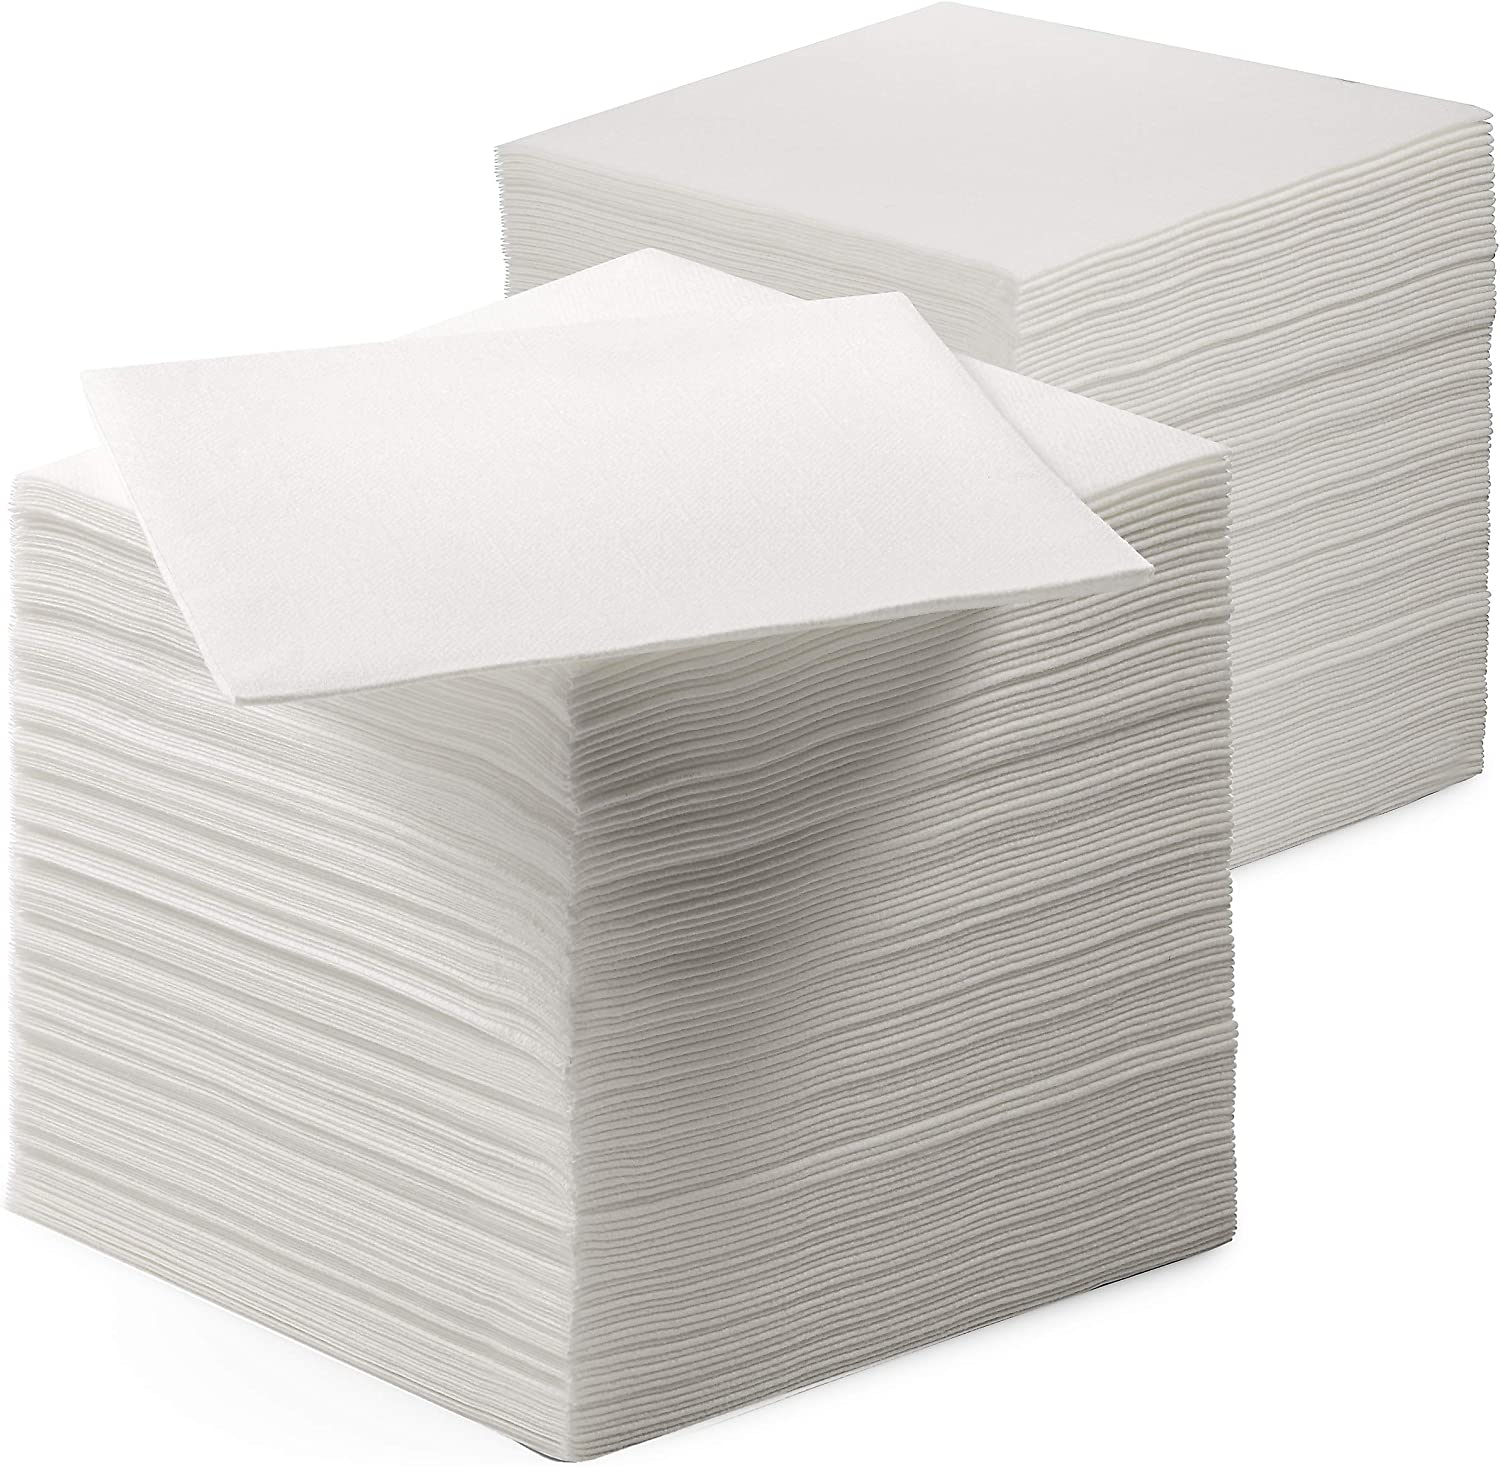 200 Linen-Feel Beverage Napkins - Disposable Cocktail Napkins - Soft & Absorbant Elelgant Paper Napkins For Bar, Café, Restaurant Or Event